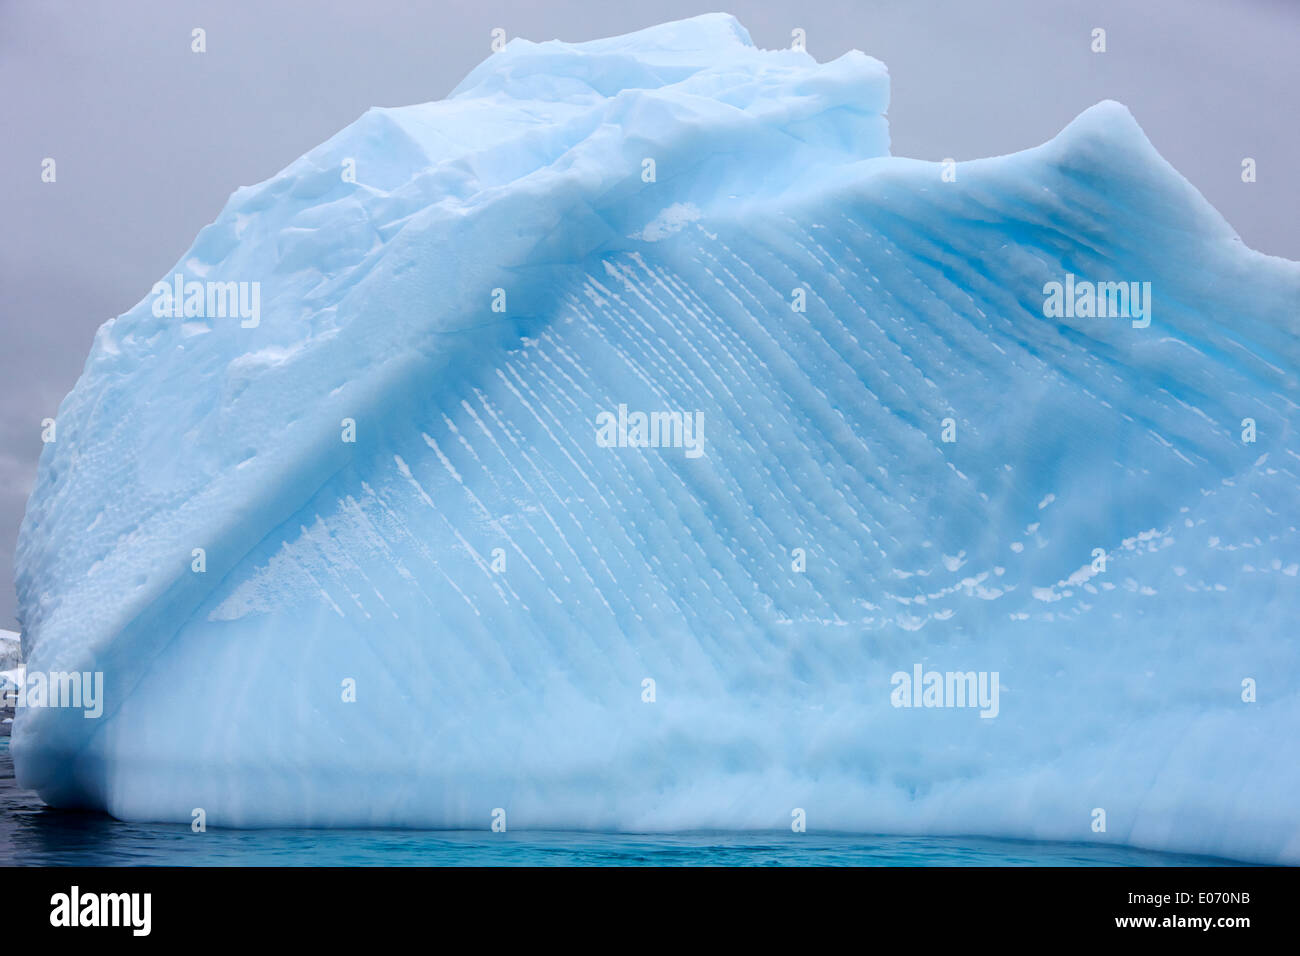 iceberg showing straight striped lines and water line erosion near cuverville island Antarctica - Stock Image